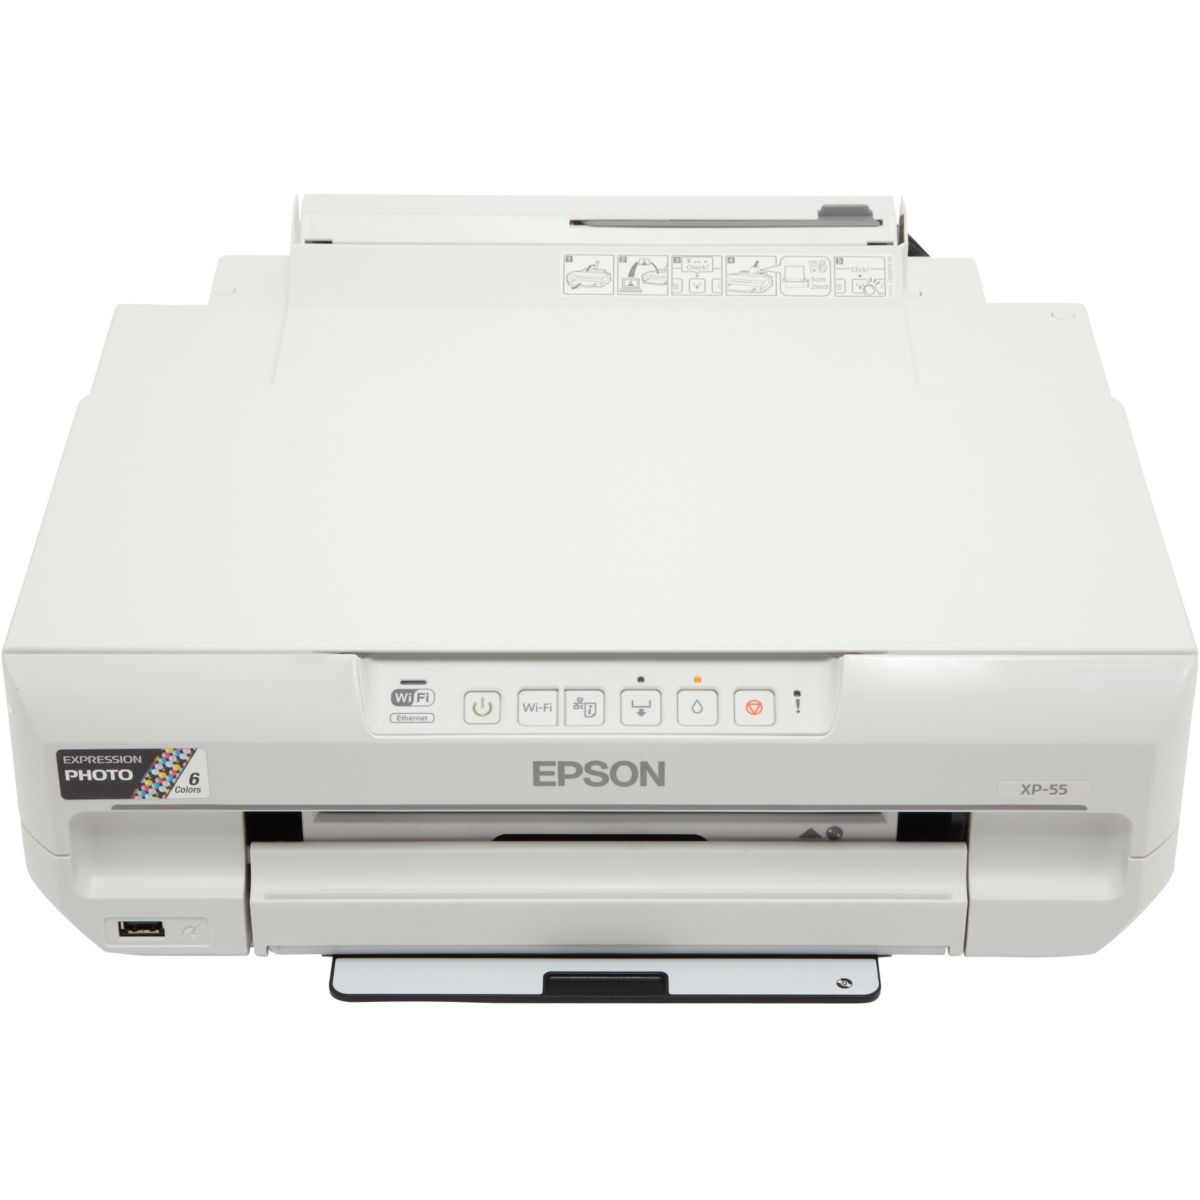 Imprimante monofonction jet d'encre epson expression photo xp-55 (photo)